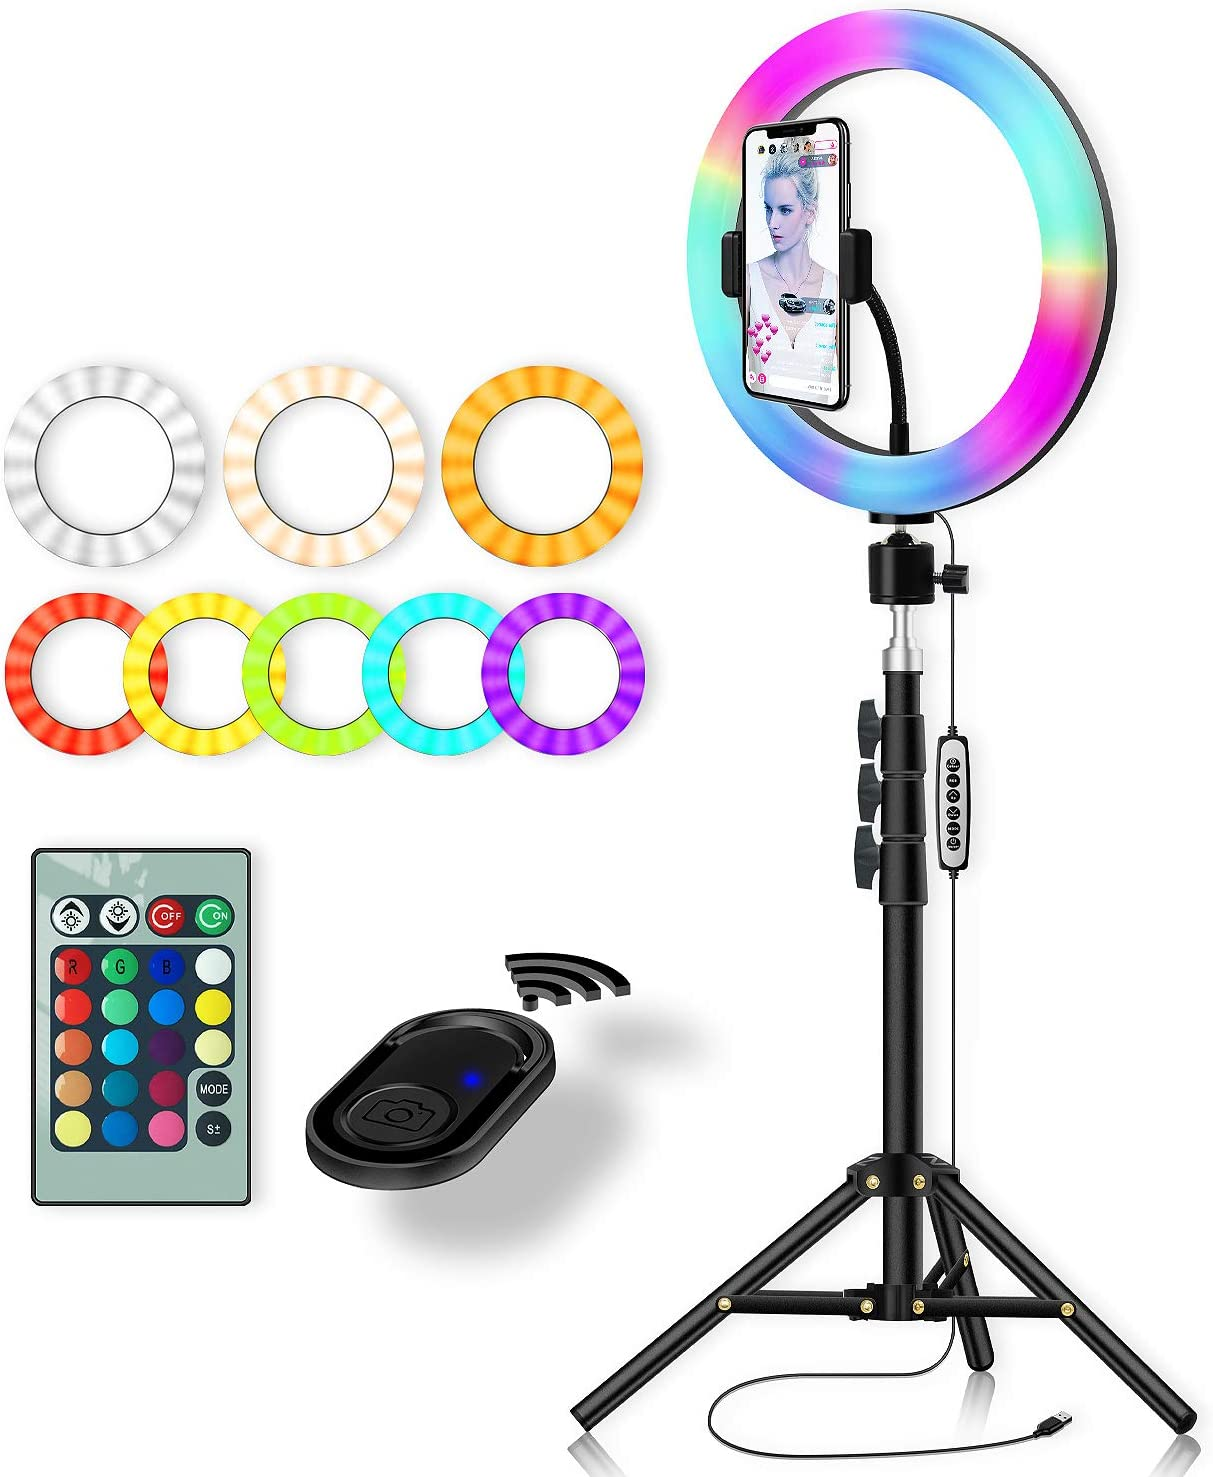 Amazon Com Rgb Color Ring Light Yingnuost 10 Inch Led Remote Control Circle Lamp With Phone Holder Camera Tripod Stand For Photography Lighting Selfie Iphone Filming Tik Tok Youtube Video Recording